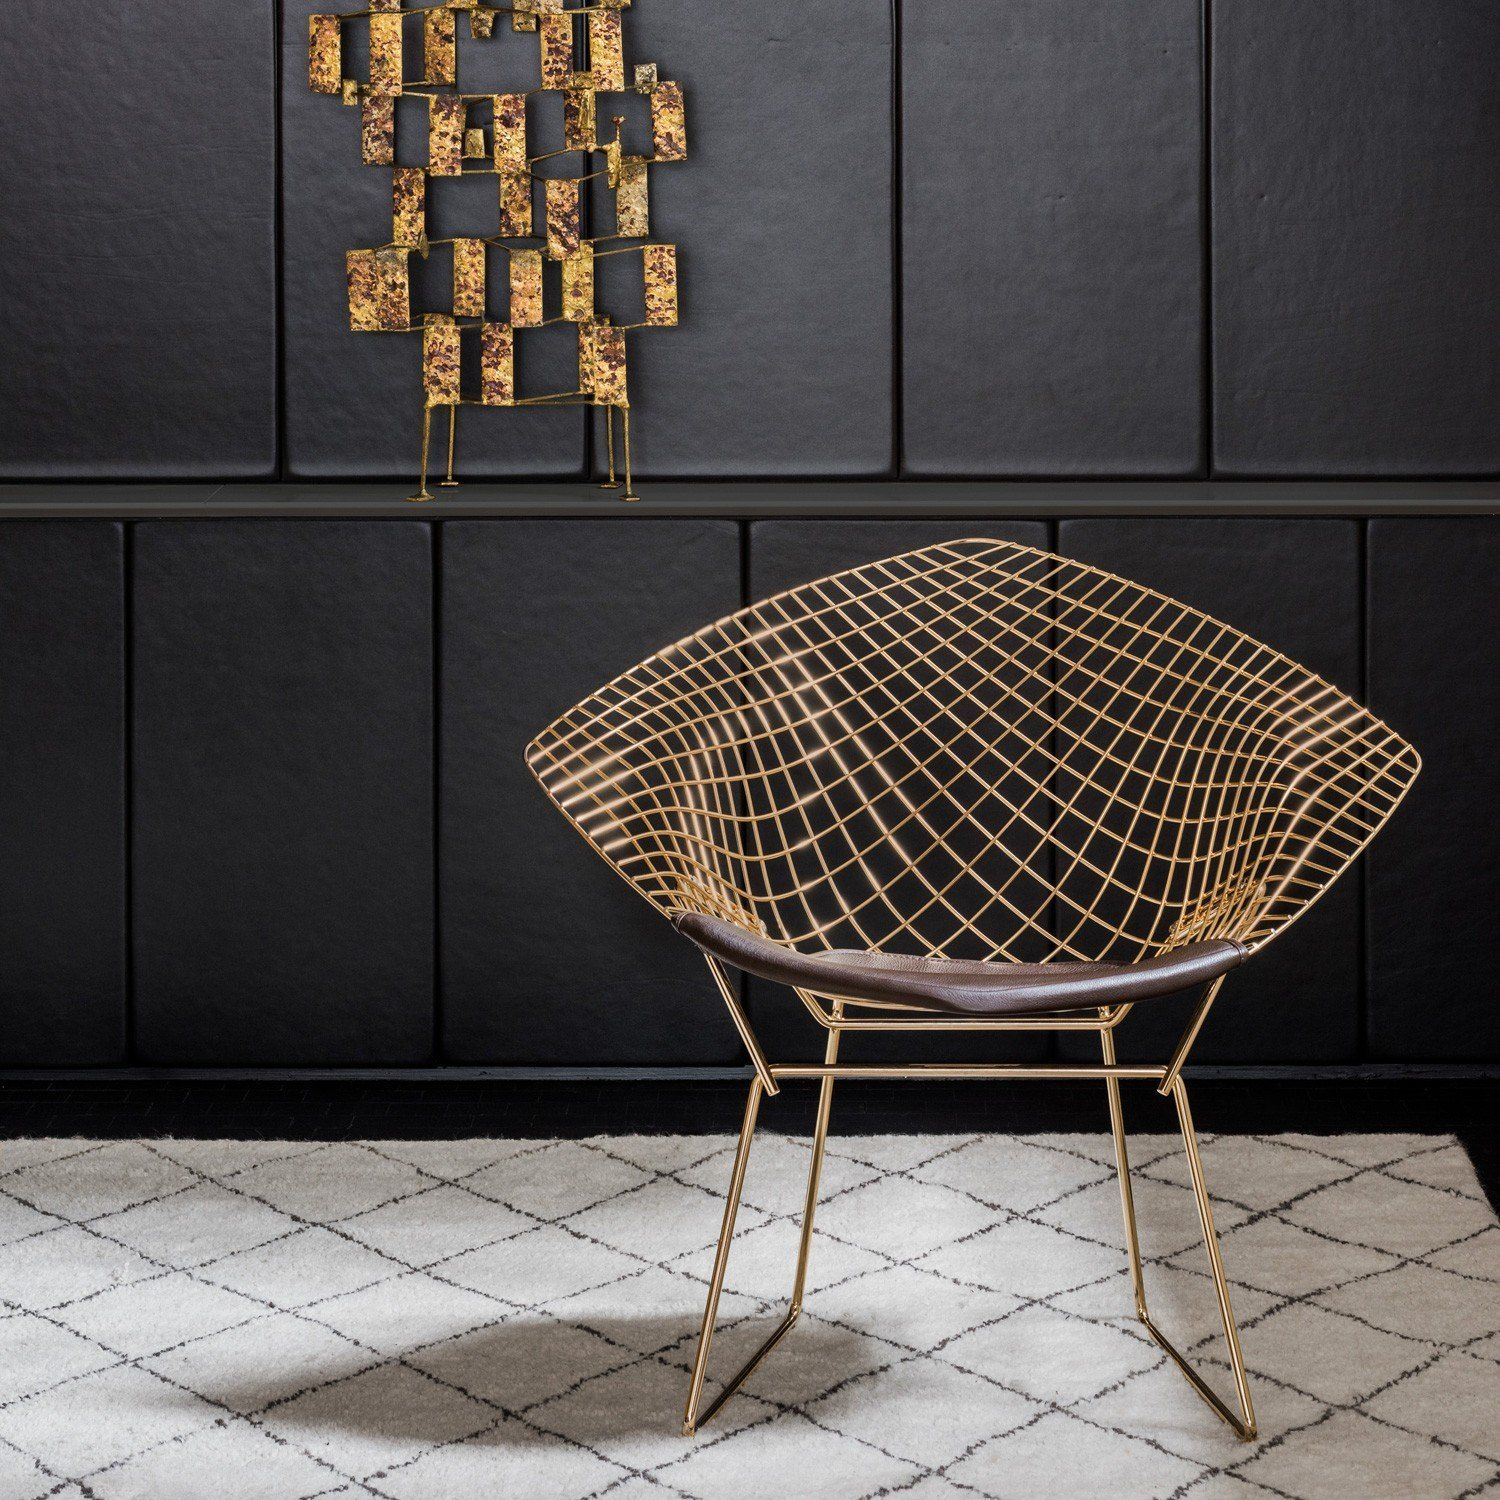 Stupendous The Modern Chair Dipped In Gold Knoll Chairs Modern Alphanode Cool Chair Designs And Ideas Alphanodeonline